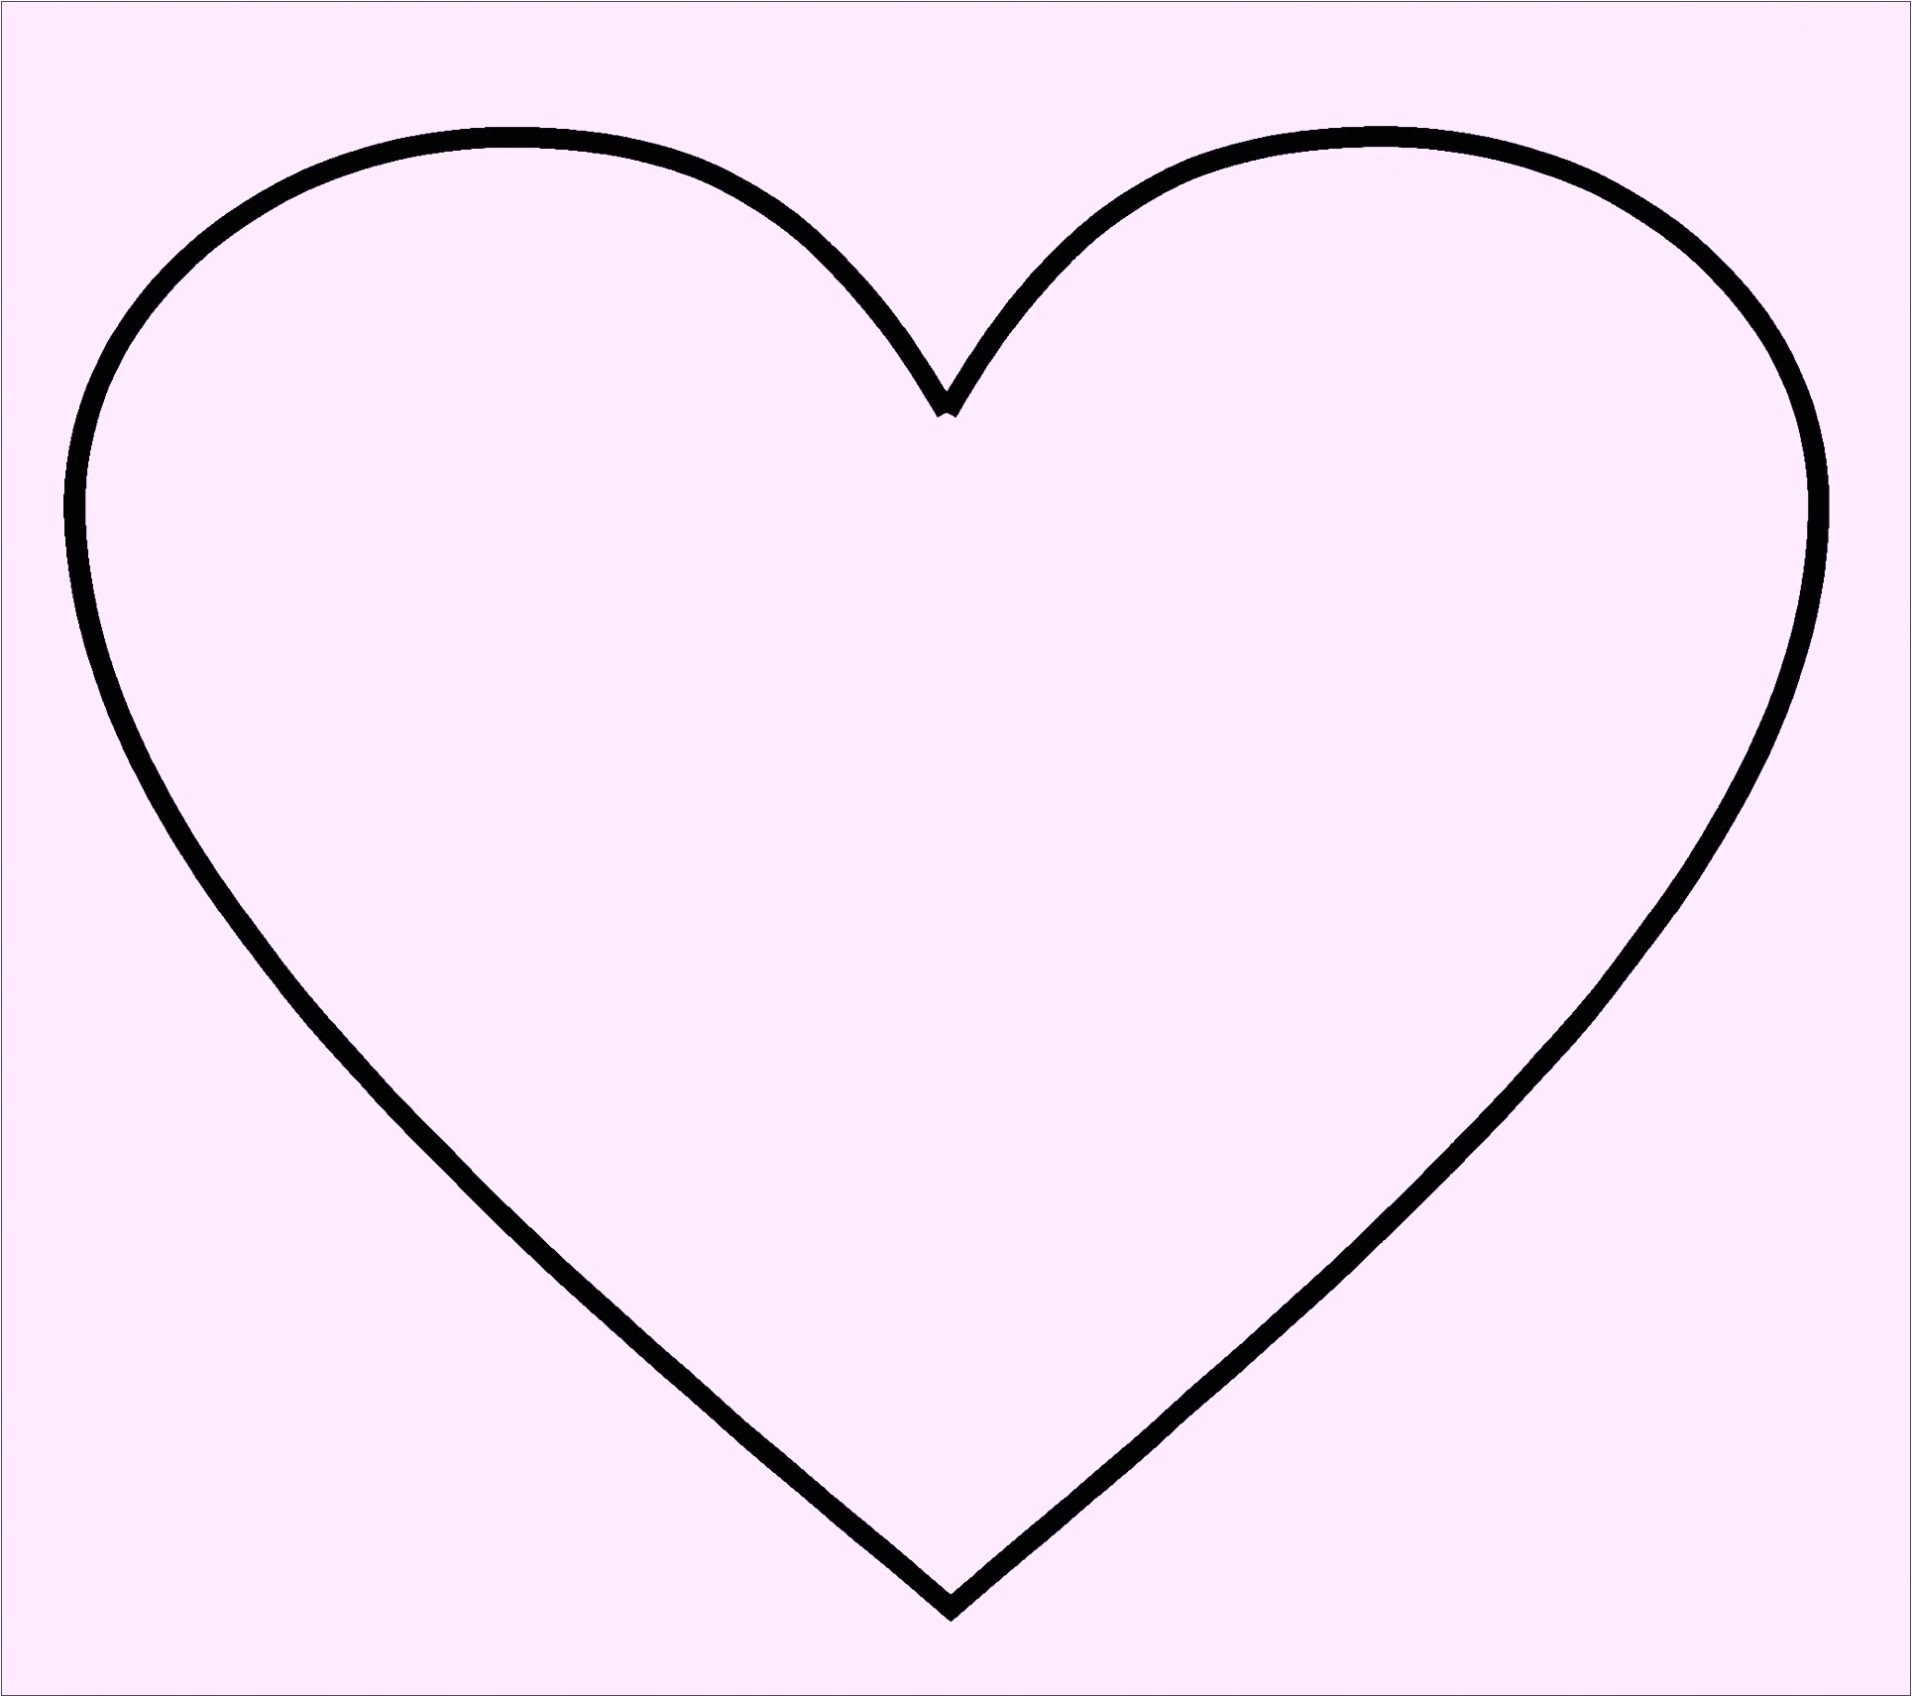 Heart Template for Printing Free Printable Heart Shape Template